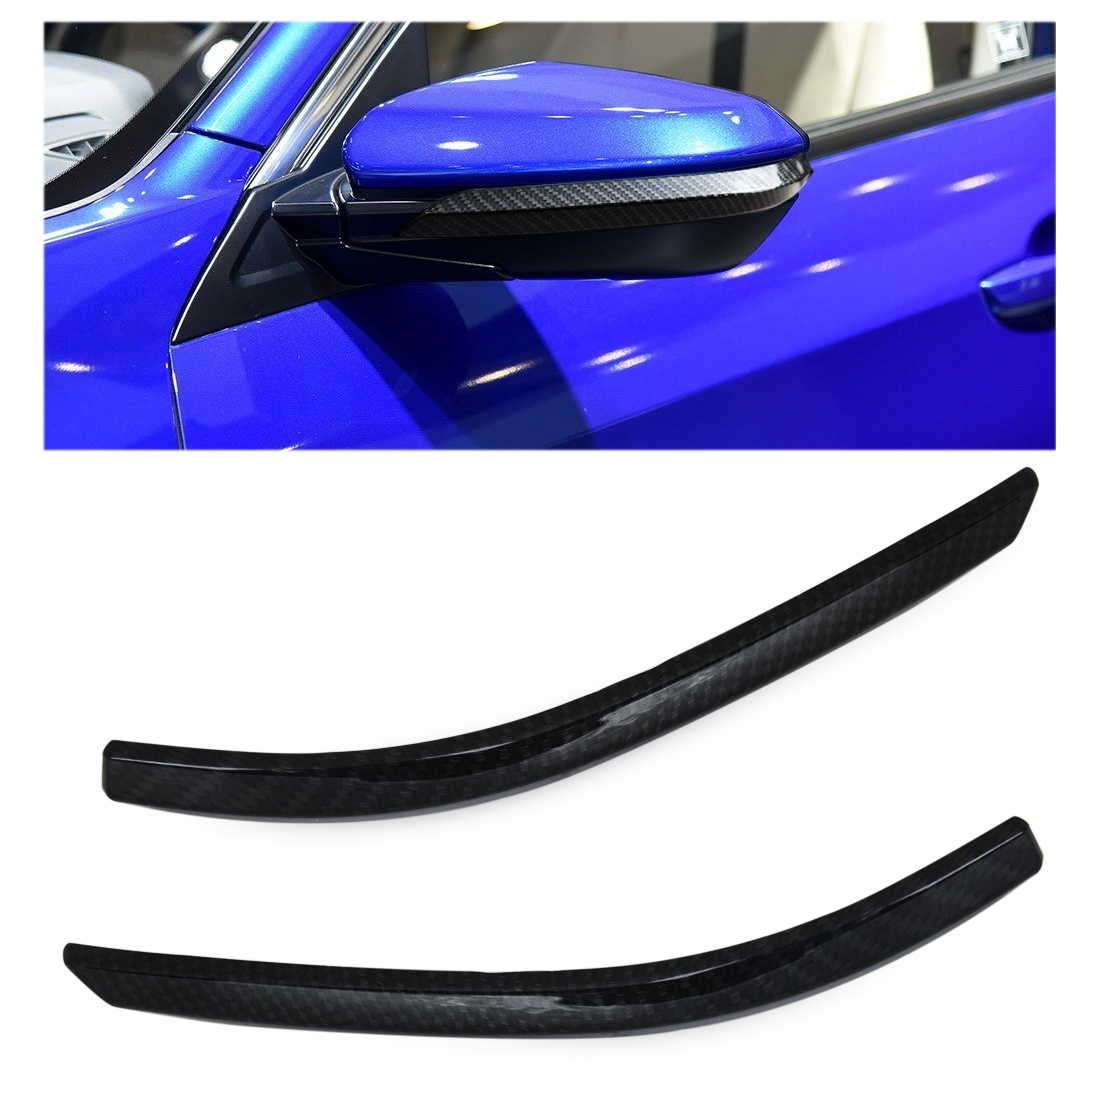 beler 2x  Black ABS Plastic Carbon Fiber Texture Rearview Side Mirror Strip Cover Trim For Honda Civic 2016 2017 Car Styling epr car styling for mazda rx7 fc3s carbon fiber triangle glossy fibre interior side accessories racing trim